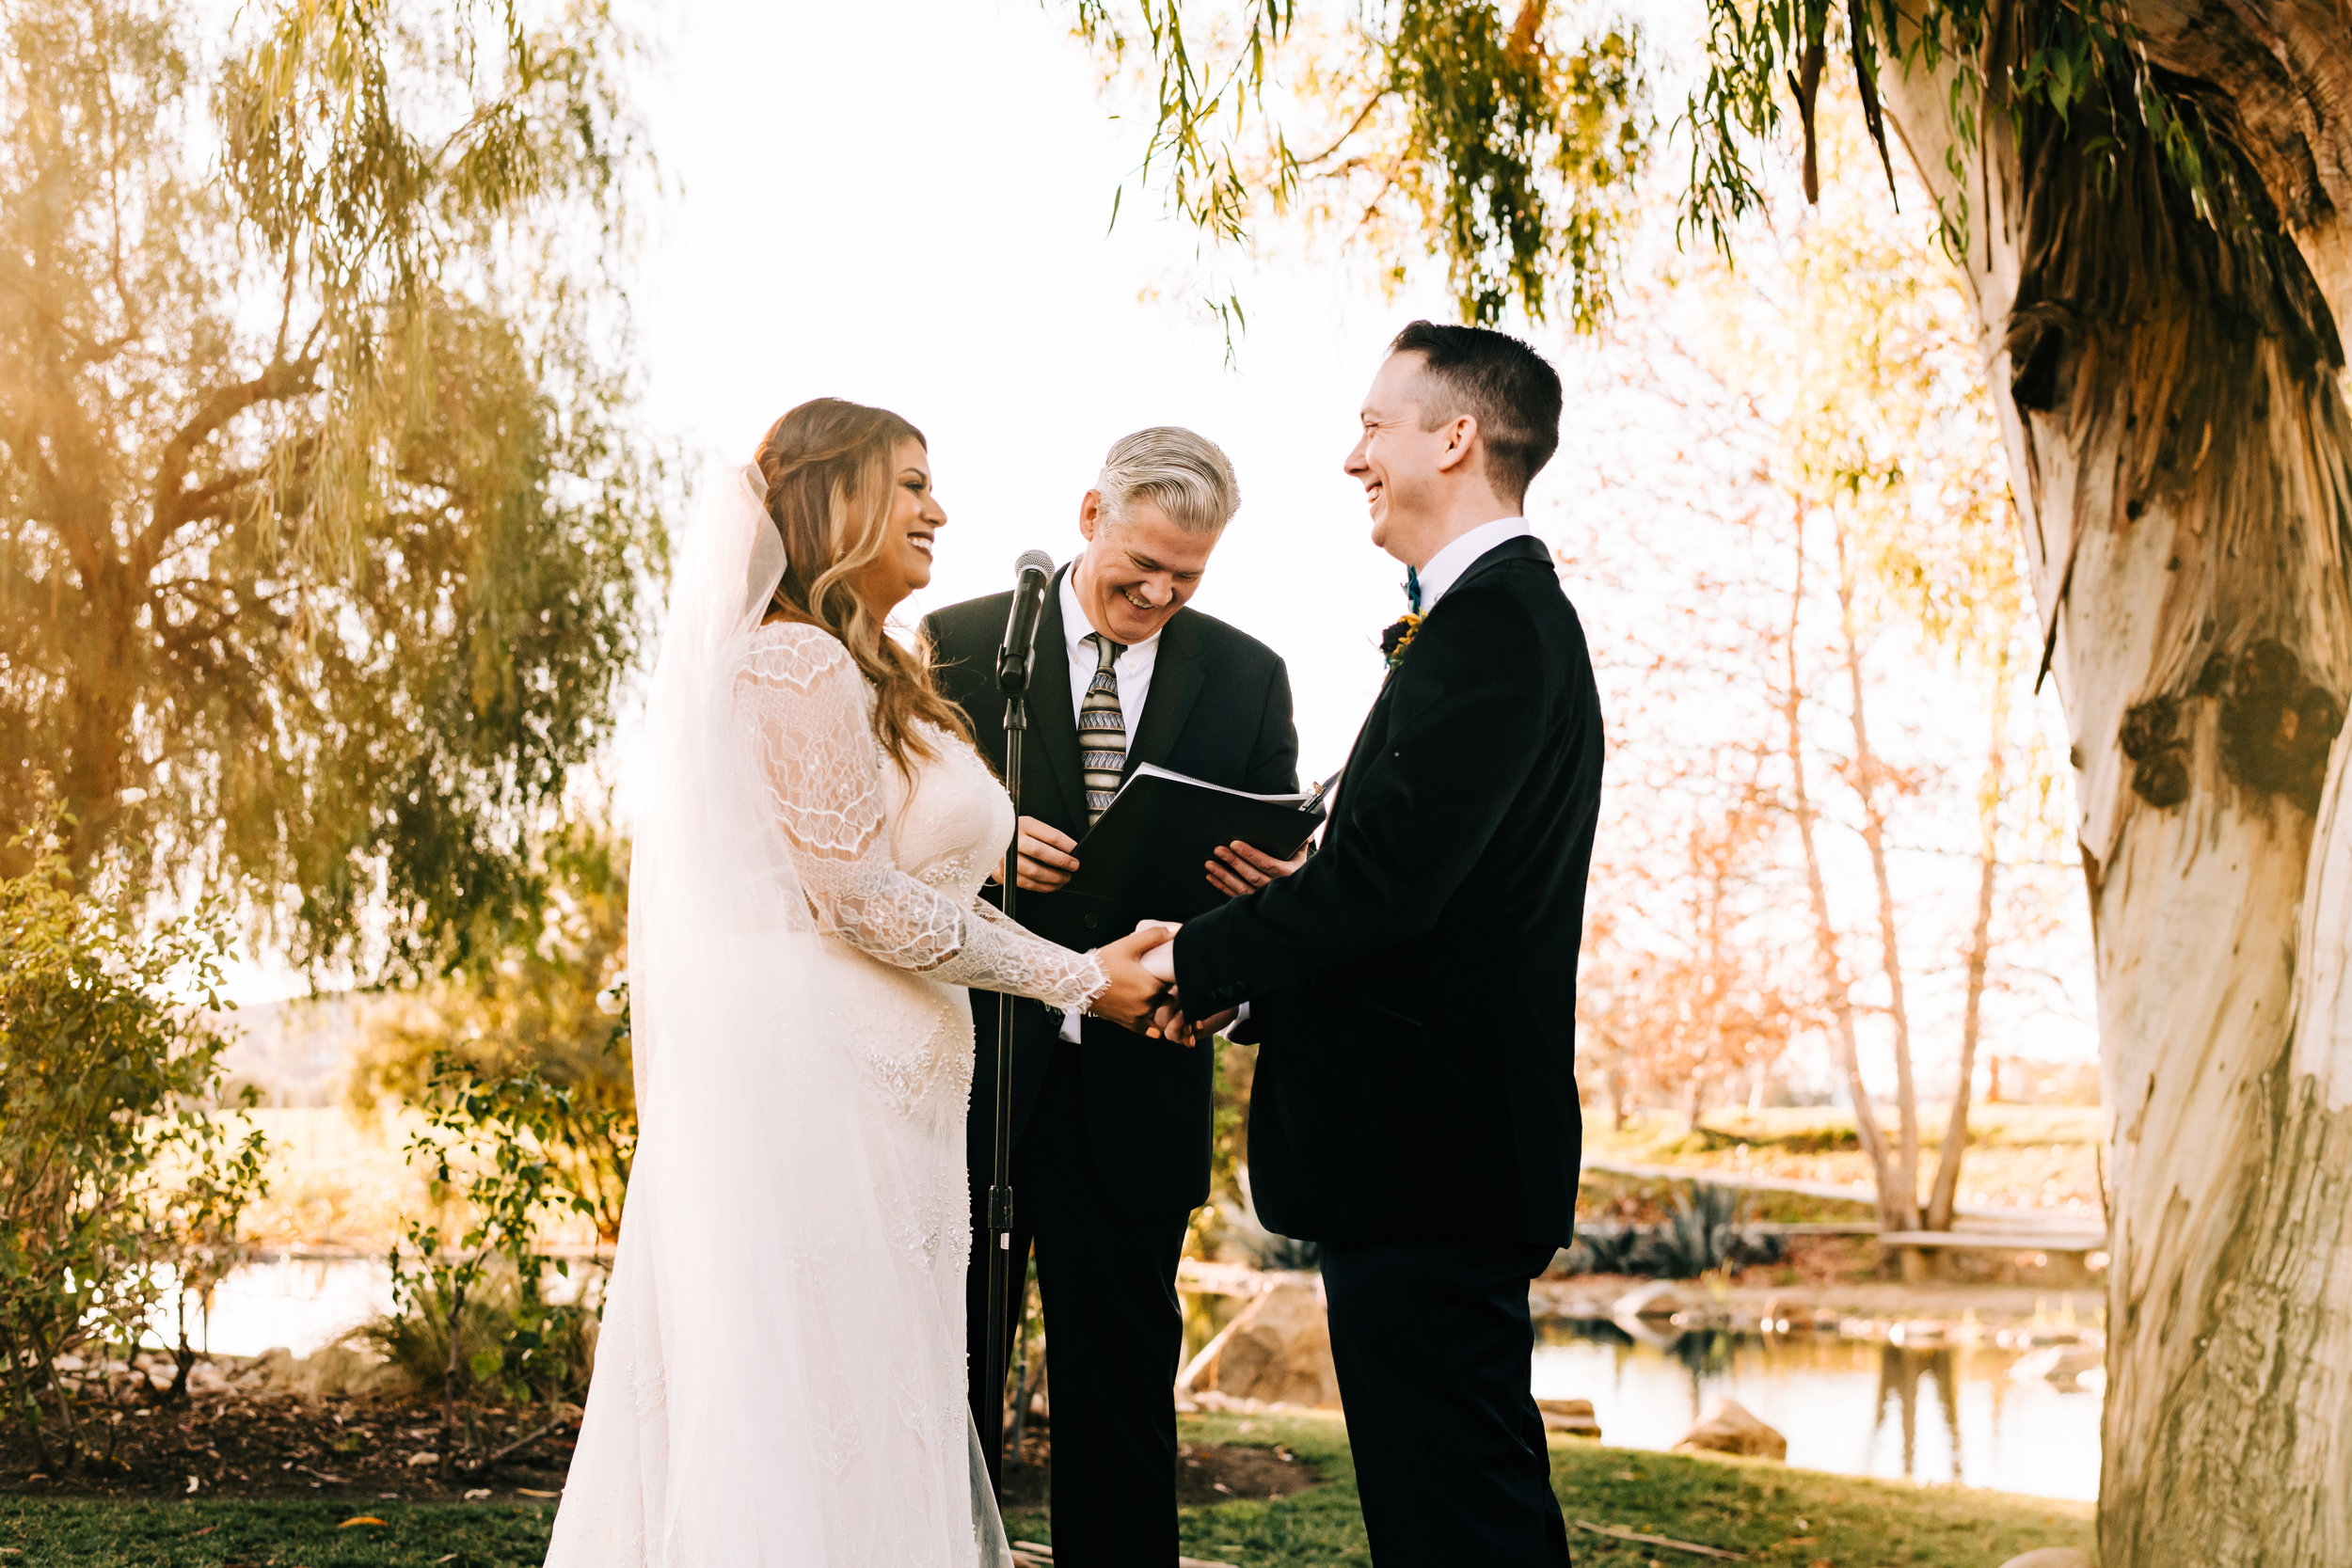 bay area nontraditional wedding photographer southern california boho wedding love light magic san francisco oakland northern california-596.jpg